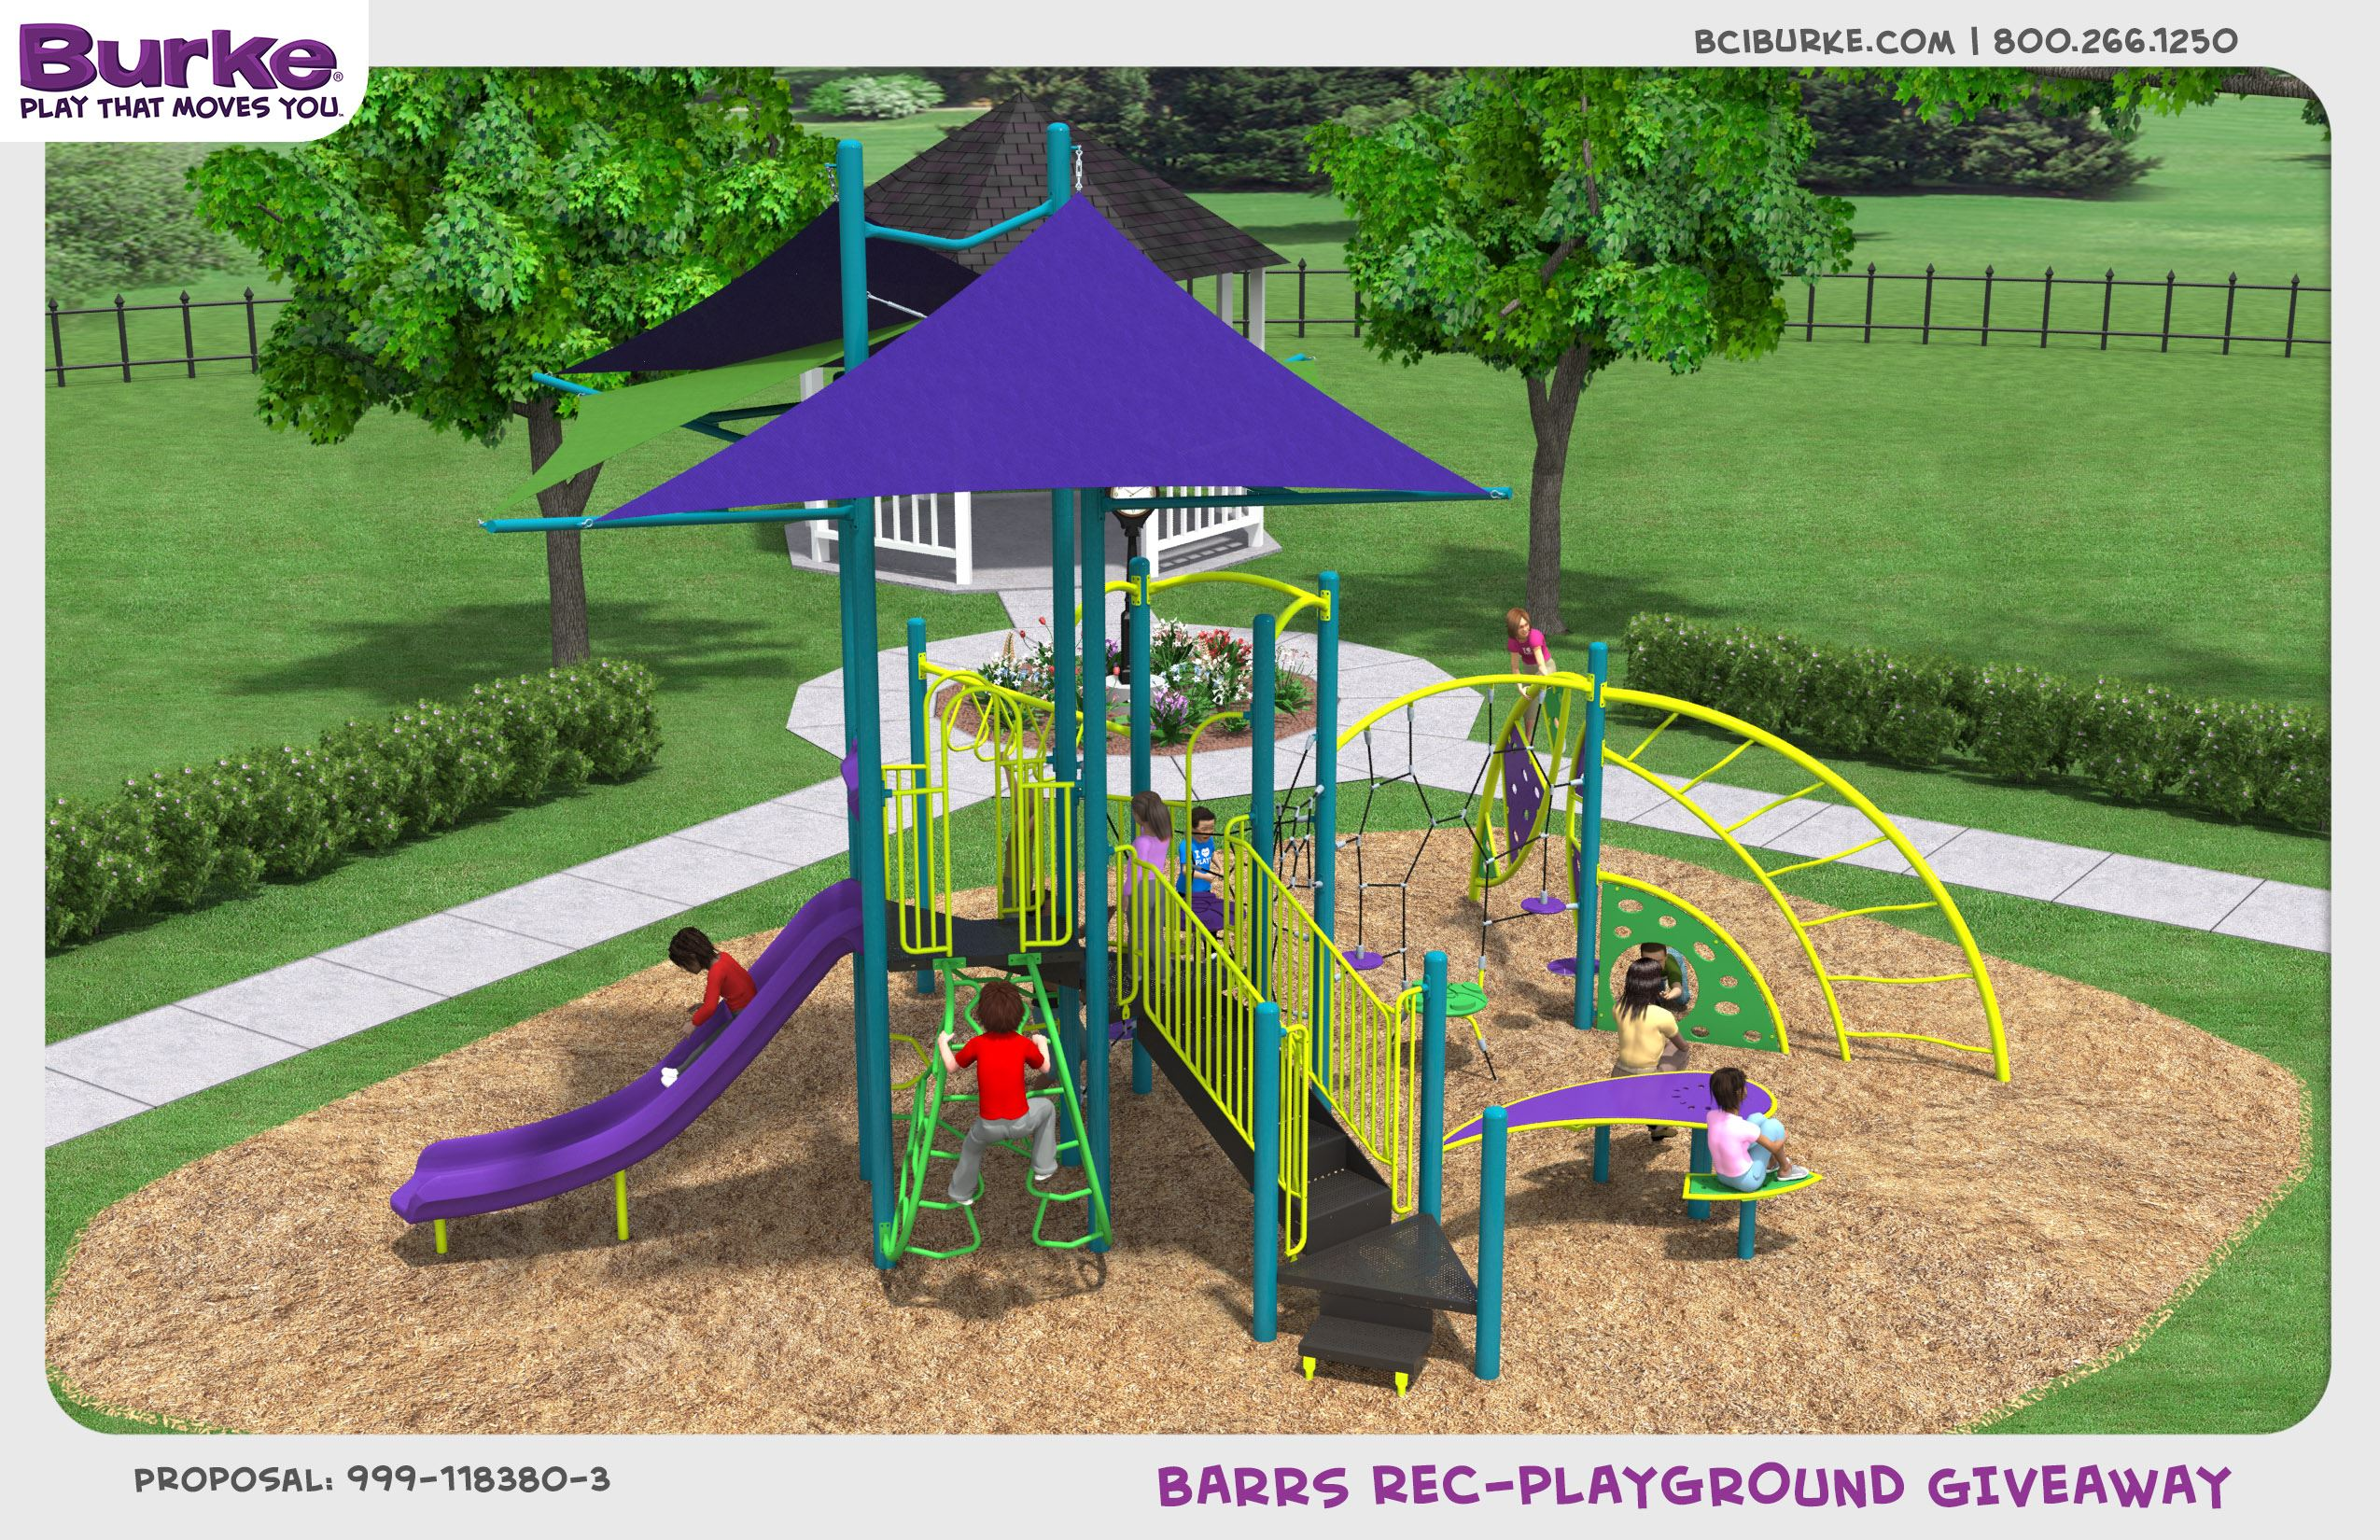 Wash st playground image